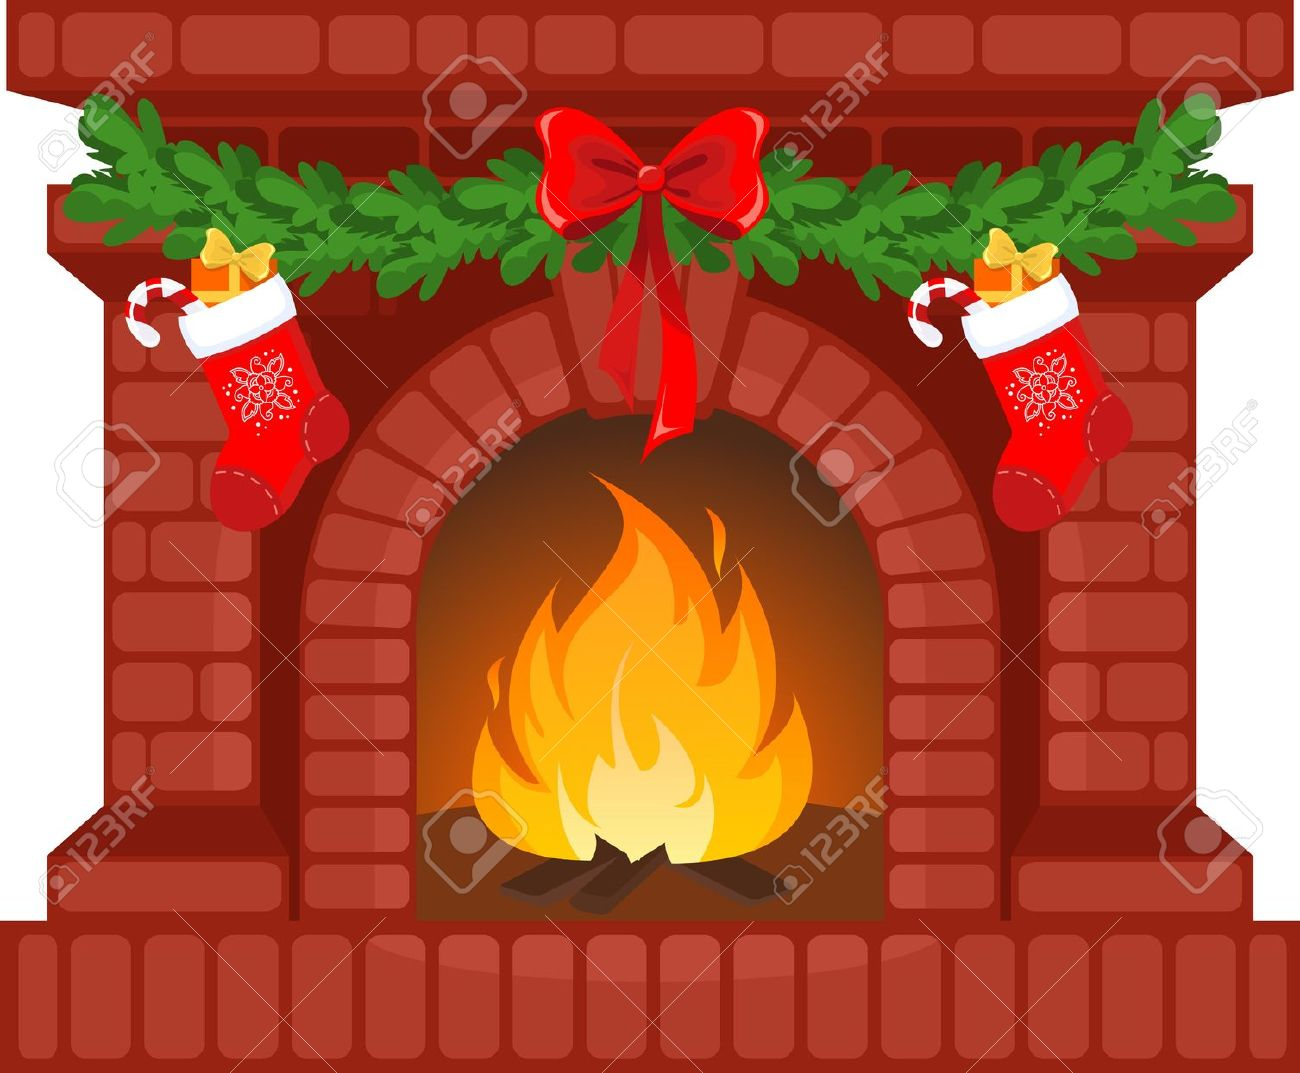 Fireplace clipart hearth Clipart winter pie 6 cliparts